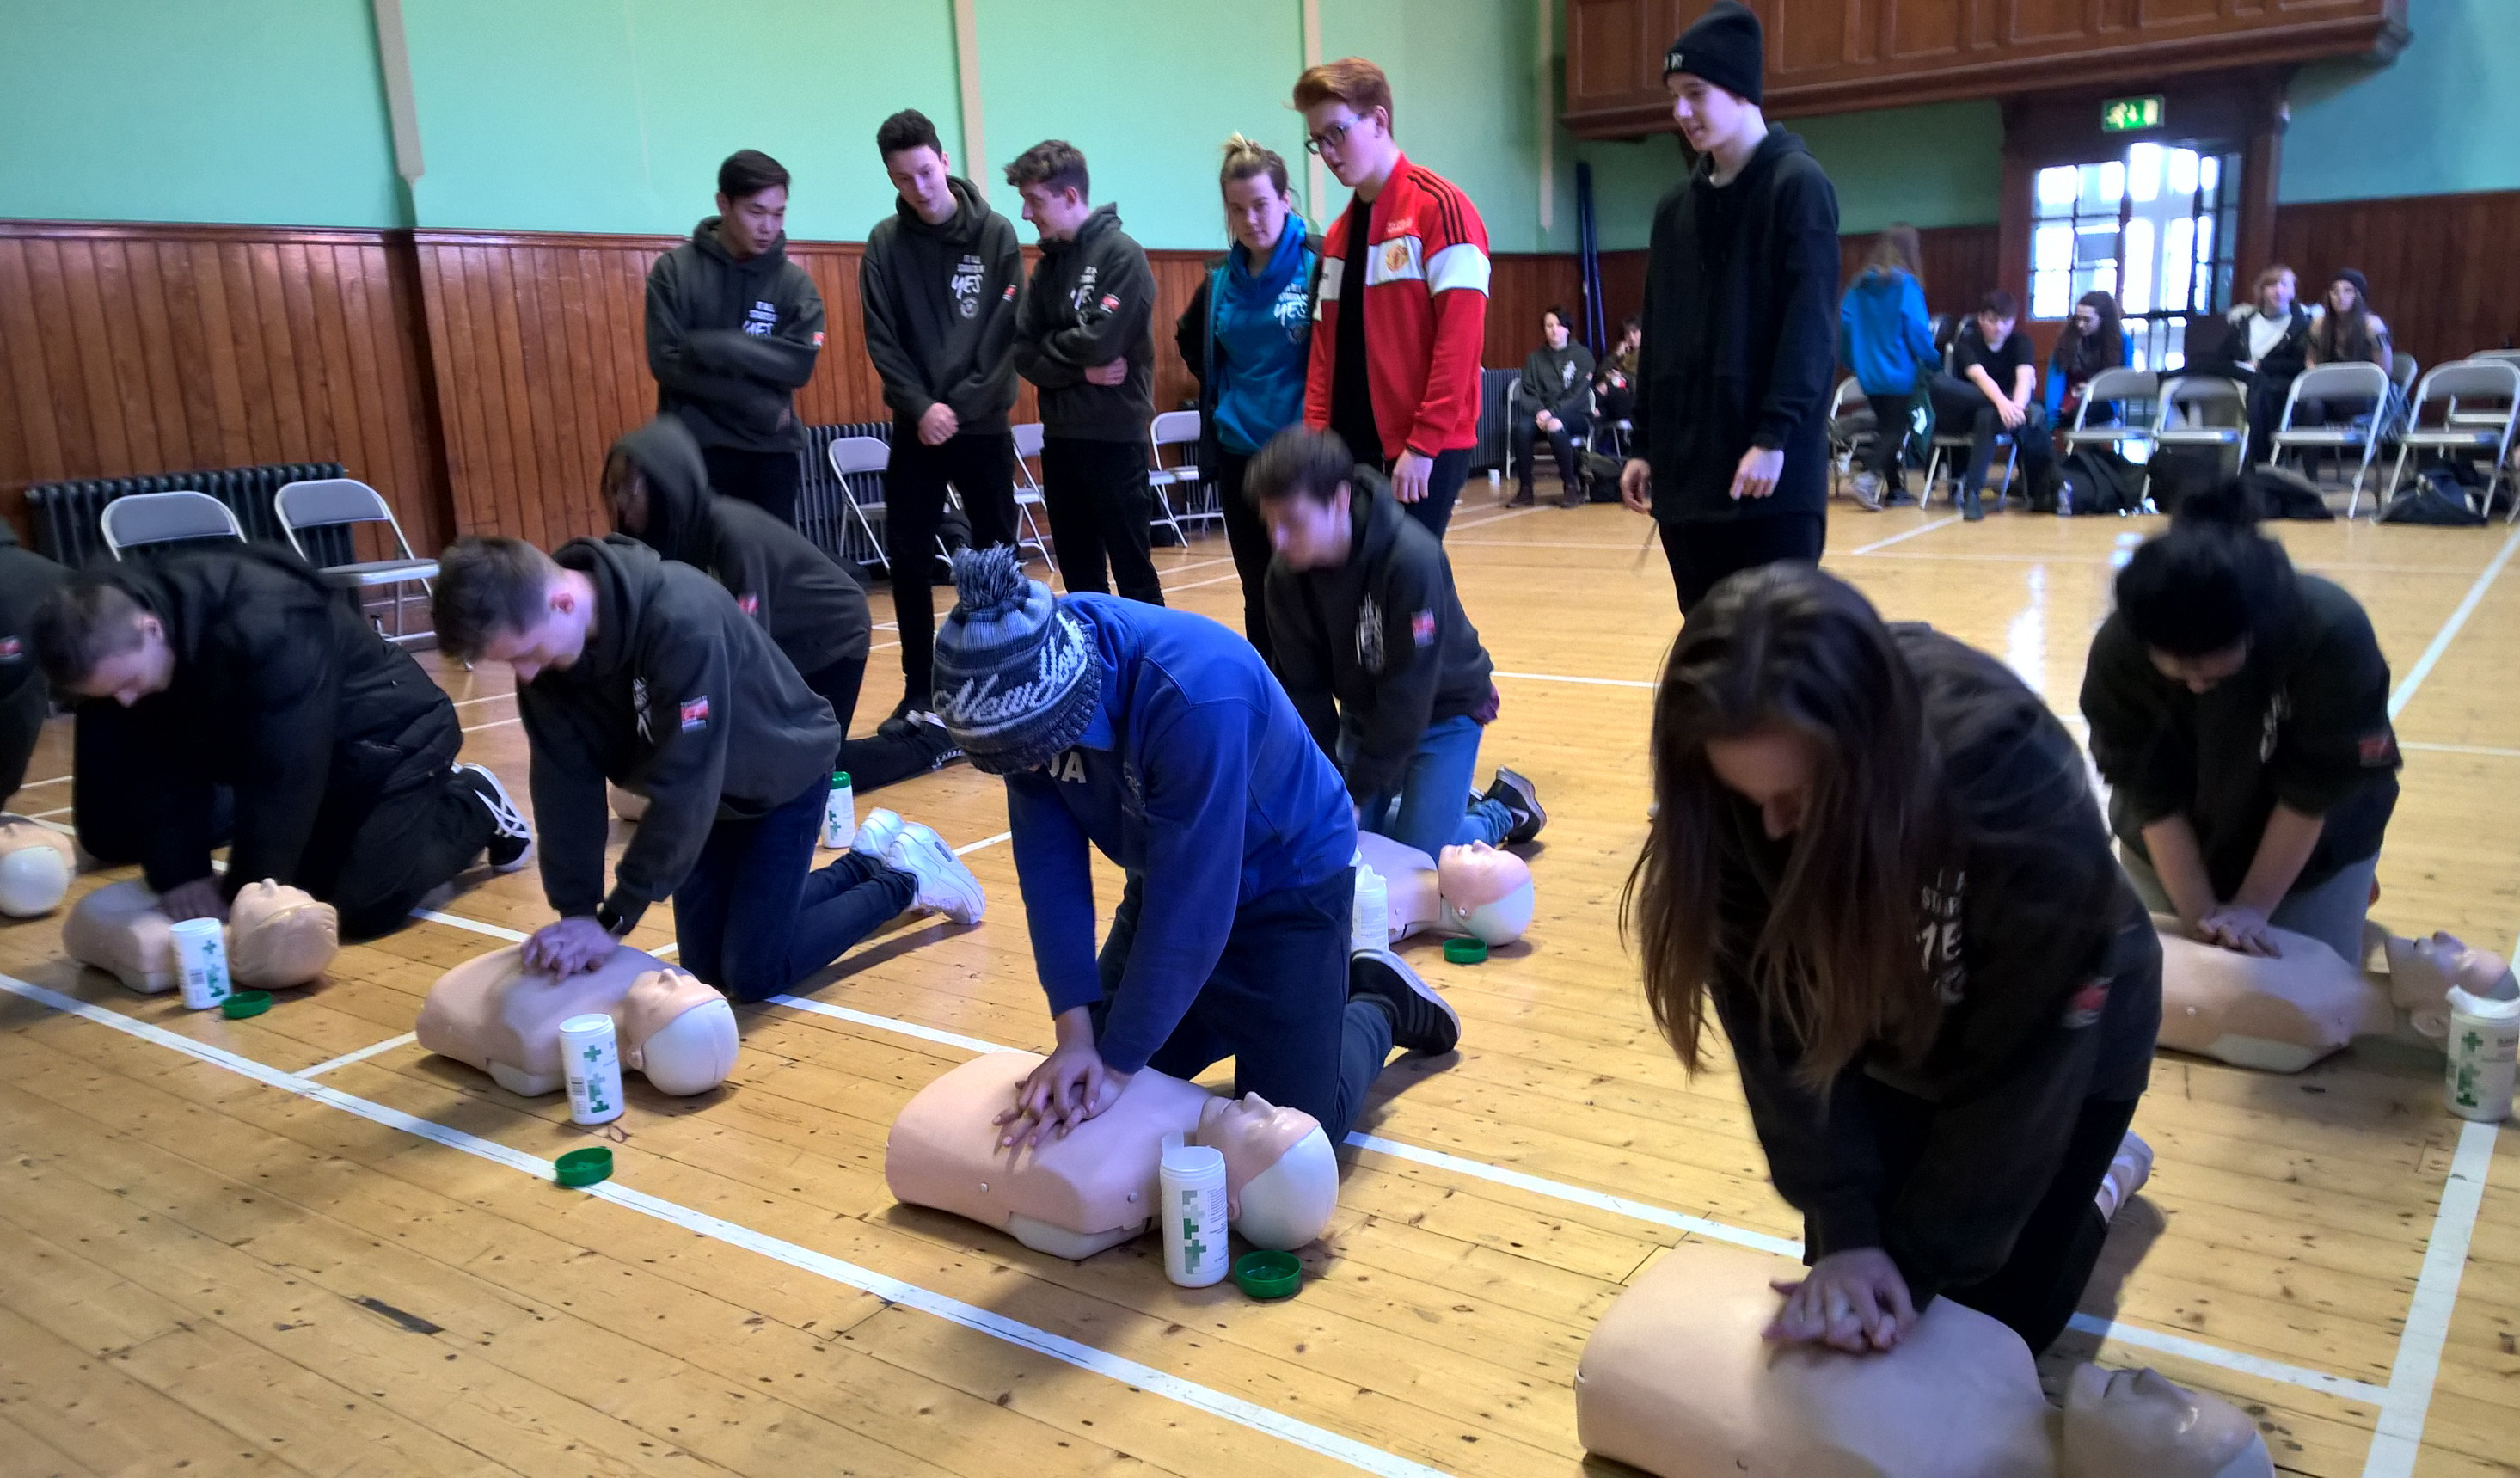 Young people learn first aid skills